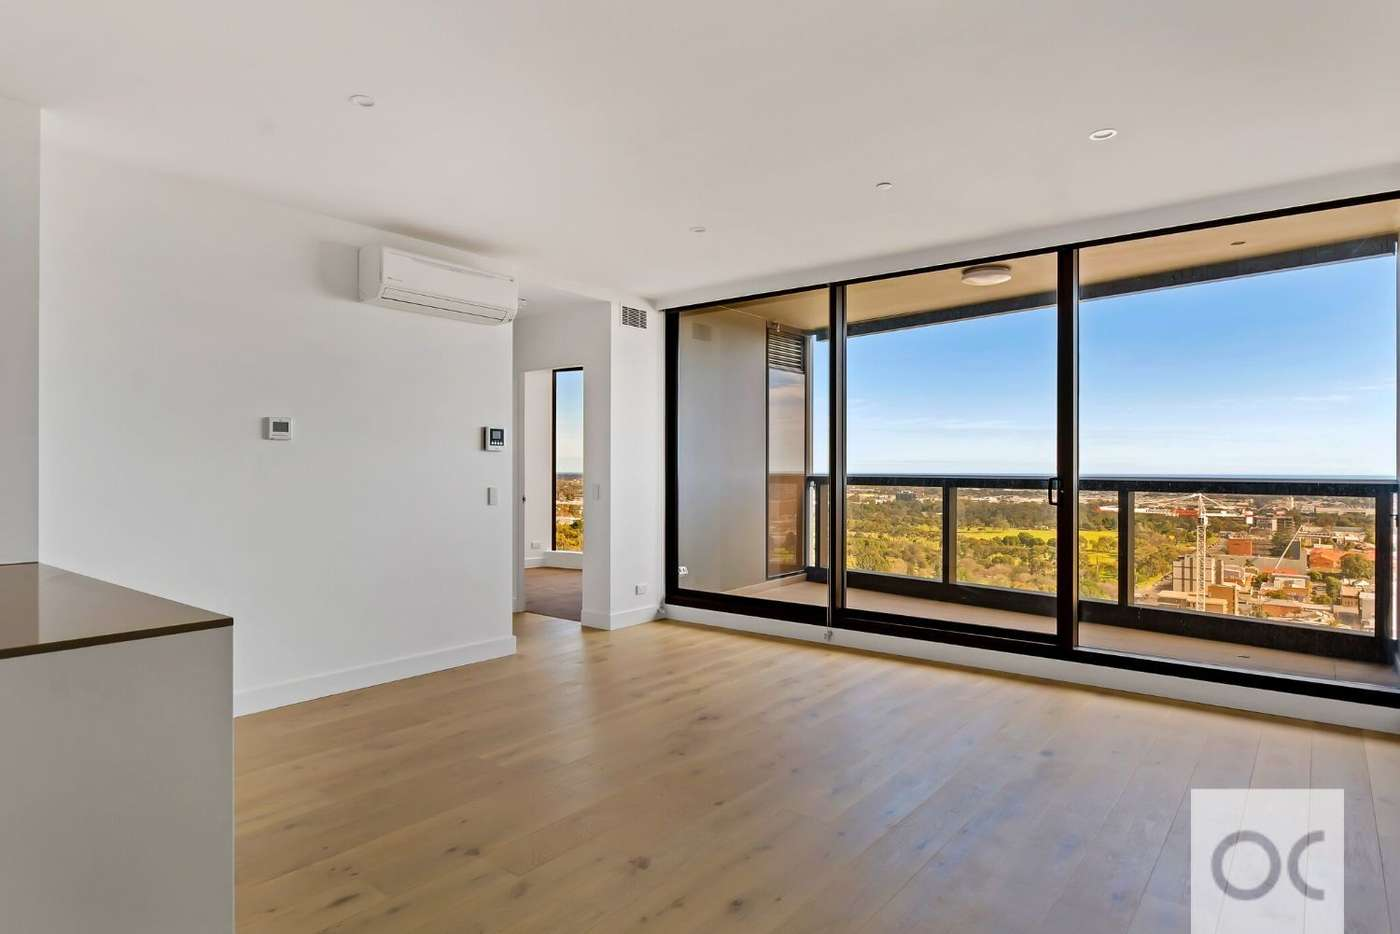 Main view of Homely apartment listing, 2210/411-427 King William Street, Adelaide SA 5000